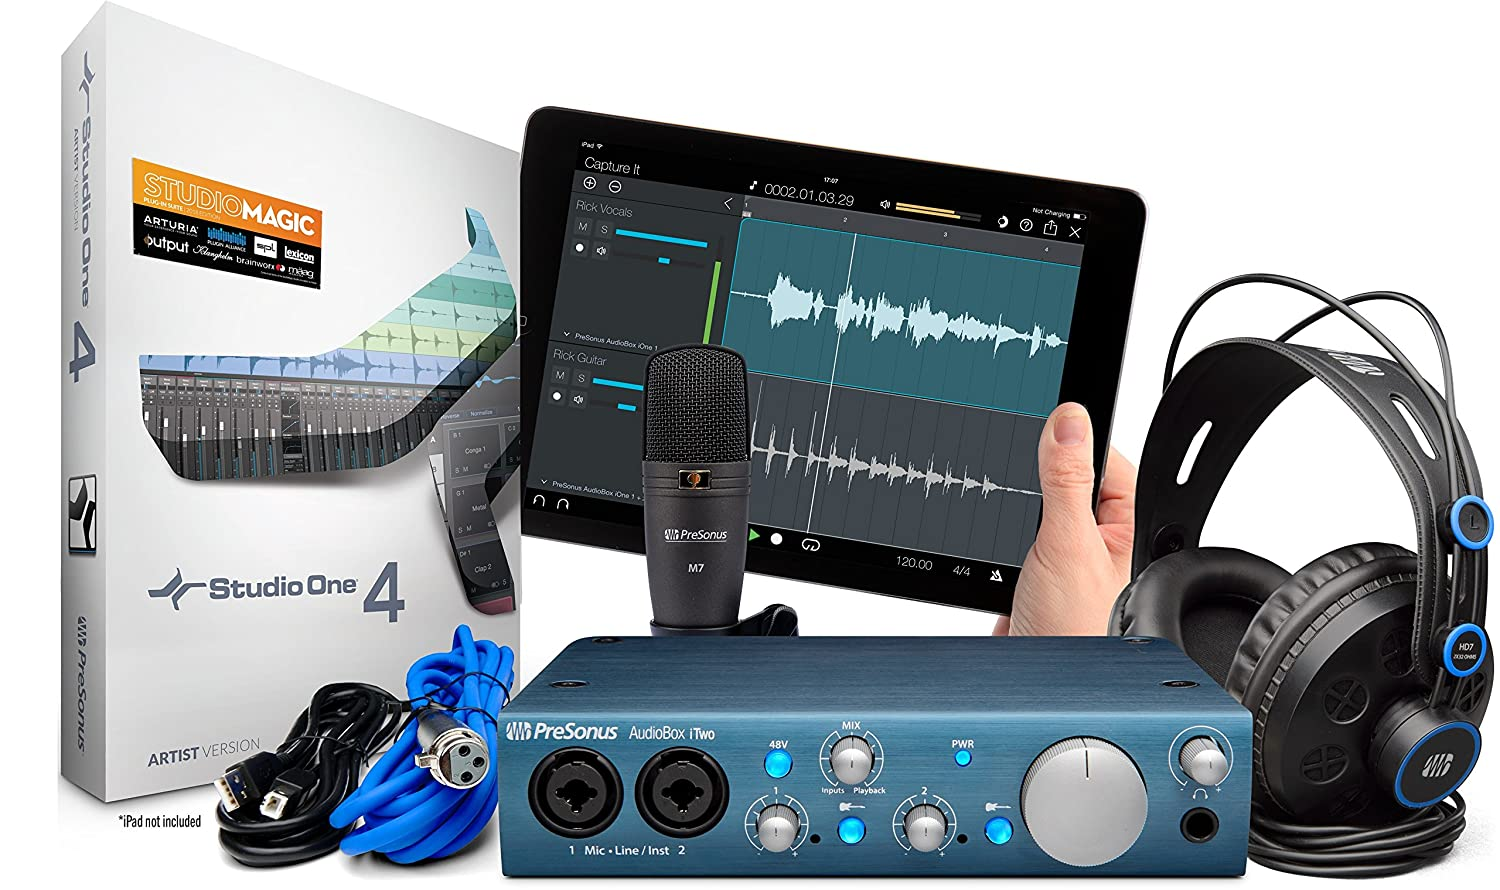 PreSonus AudioBox iOne 2x2 USB/iPad Audio Interface